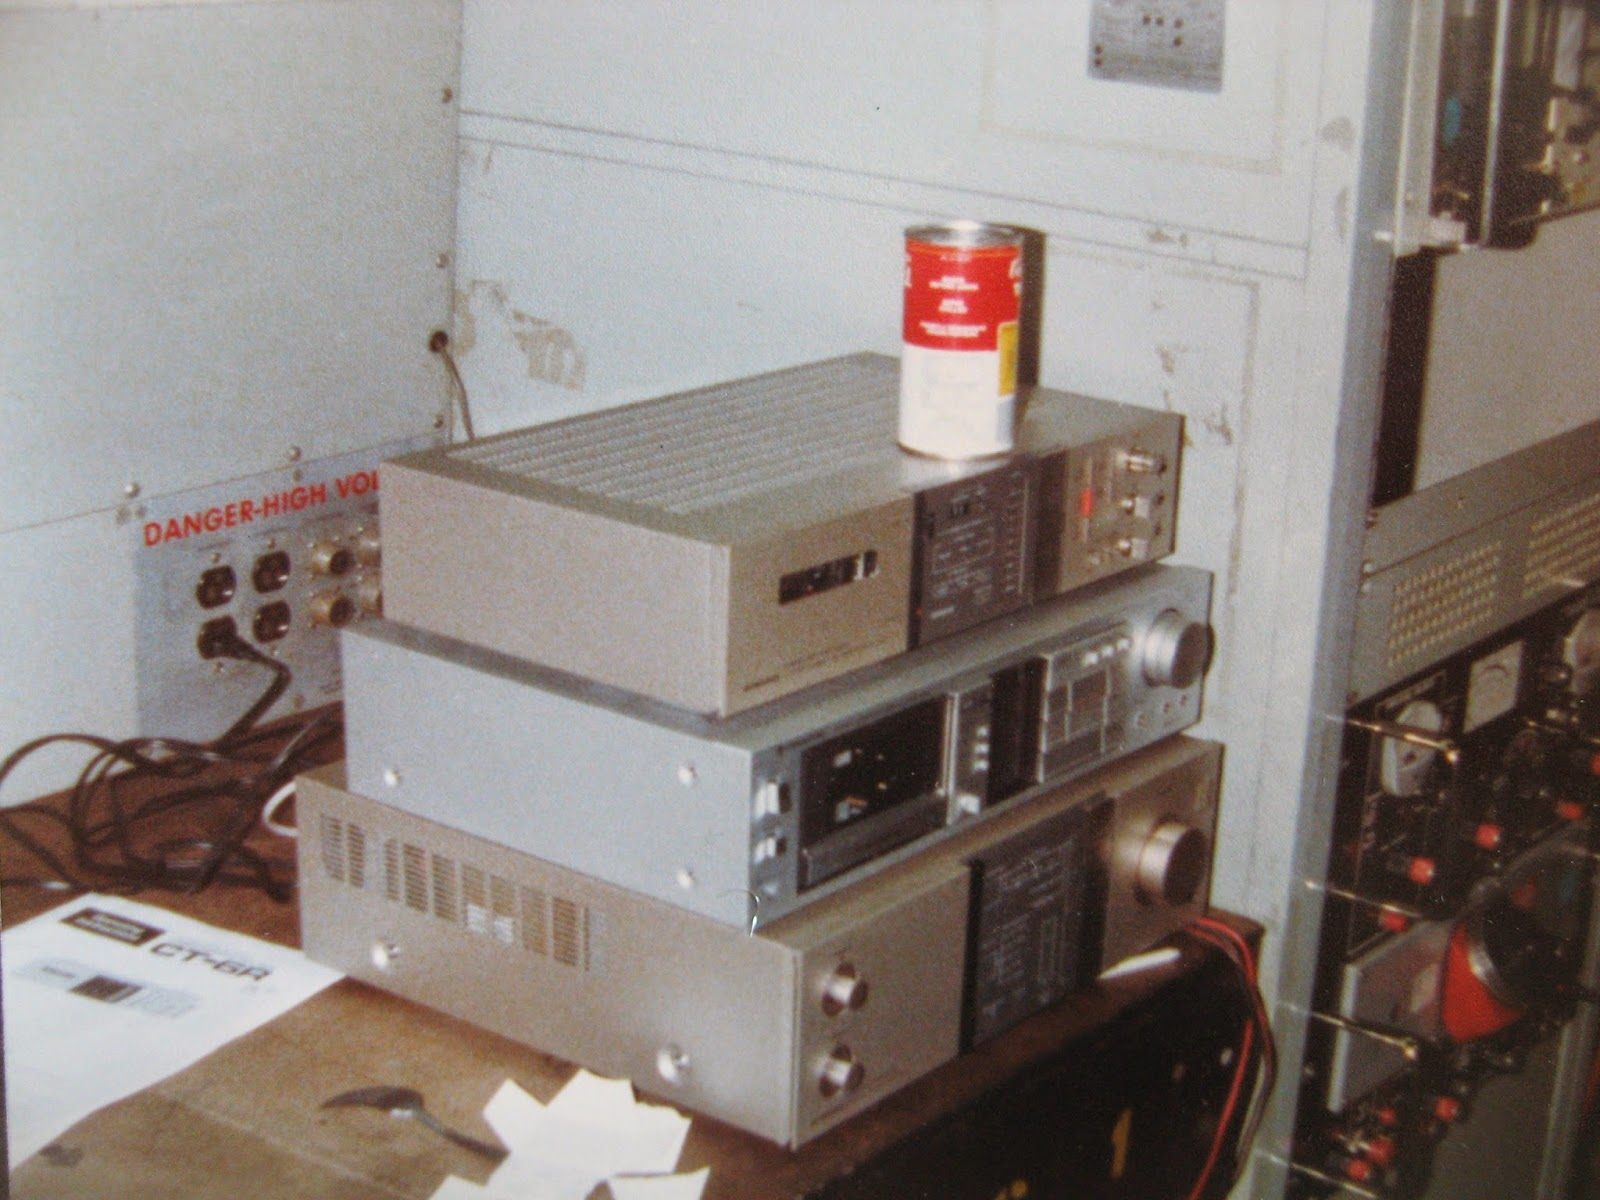 Stereo set up in the Calibration Lab shop 670 on board USS Nimitz 1982